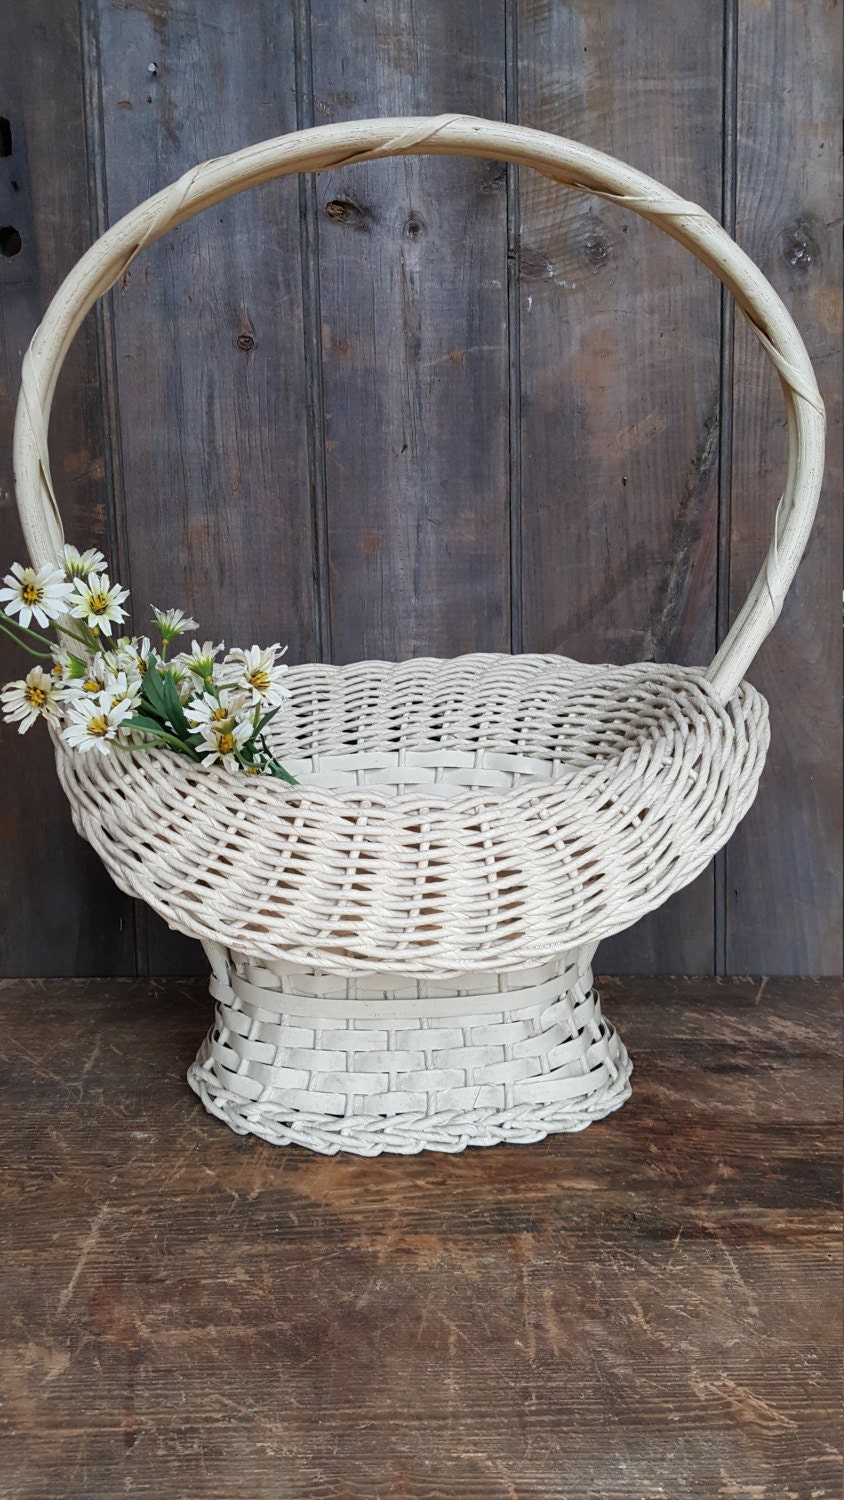 Rattan Flower Baskets : Funeral basket antique white wicker flower with handle